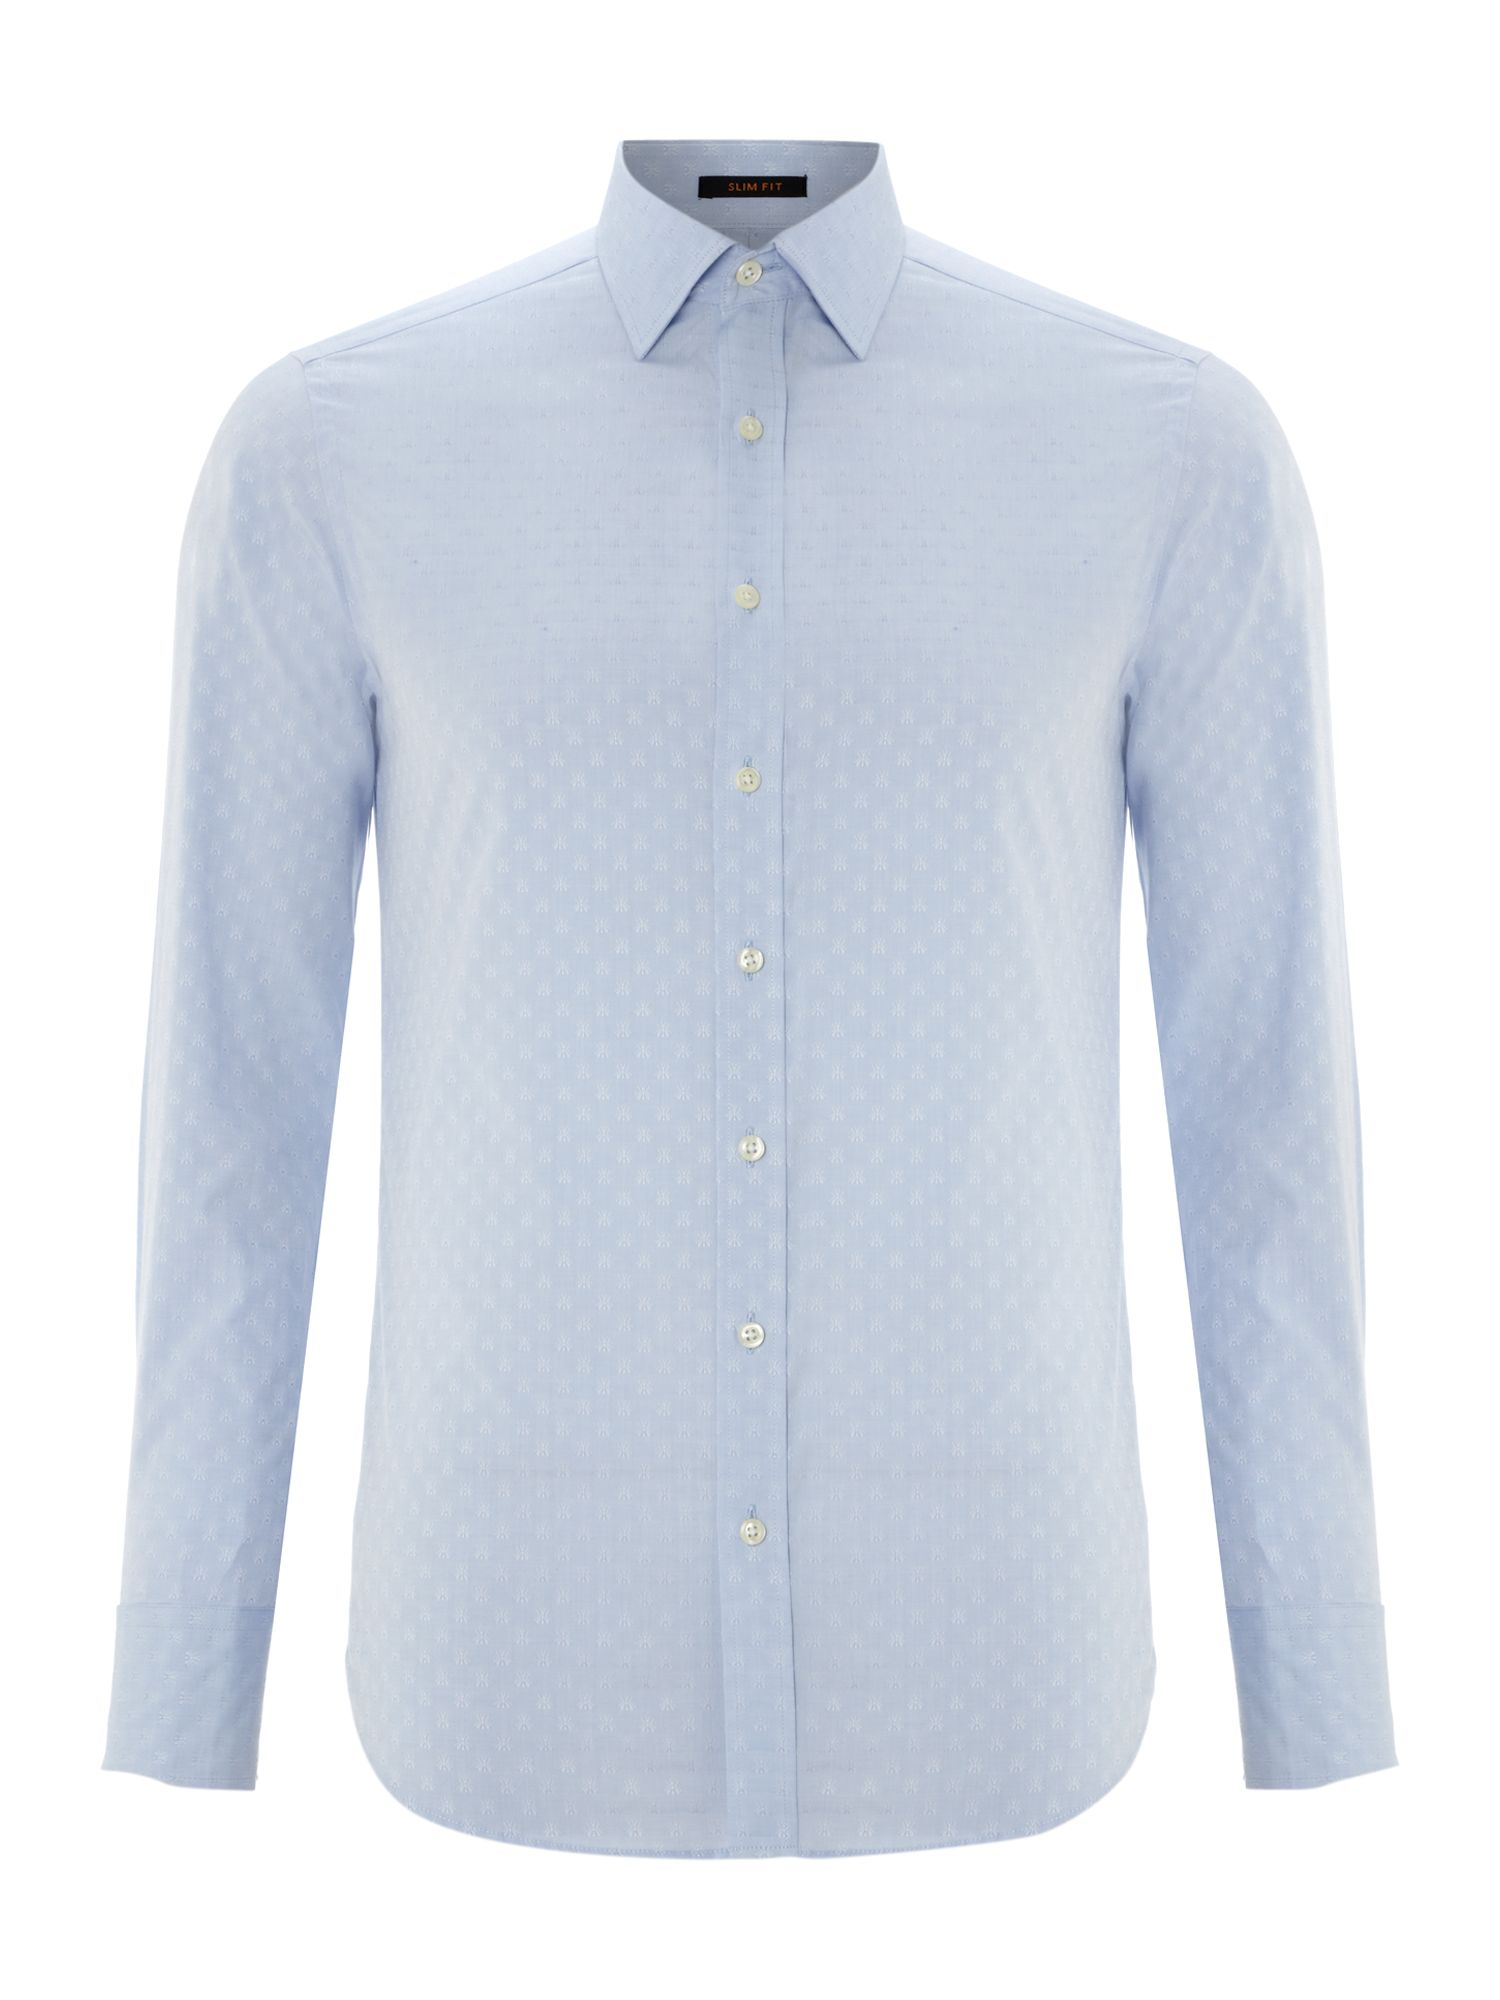 Fly jacquard 3 button cuff shirt